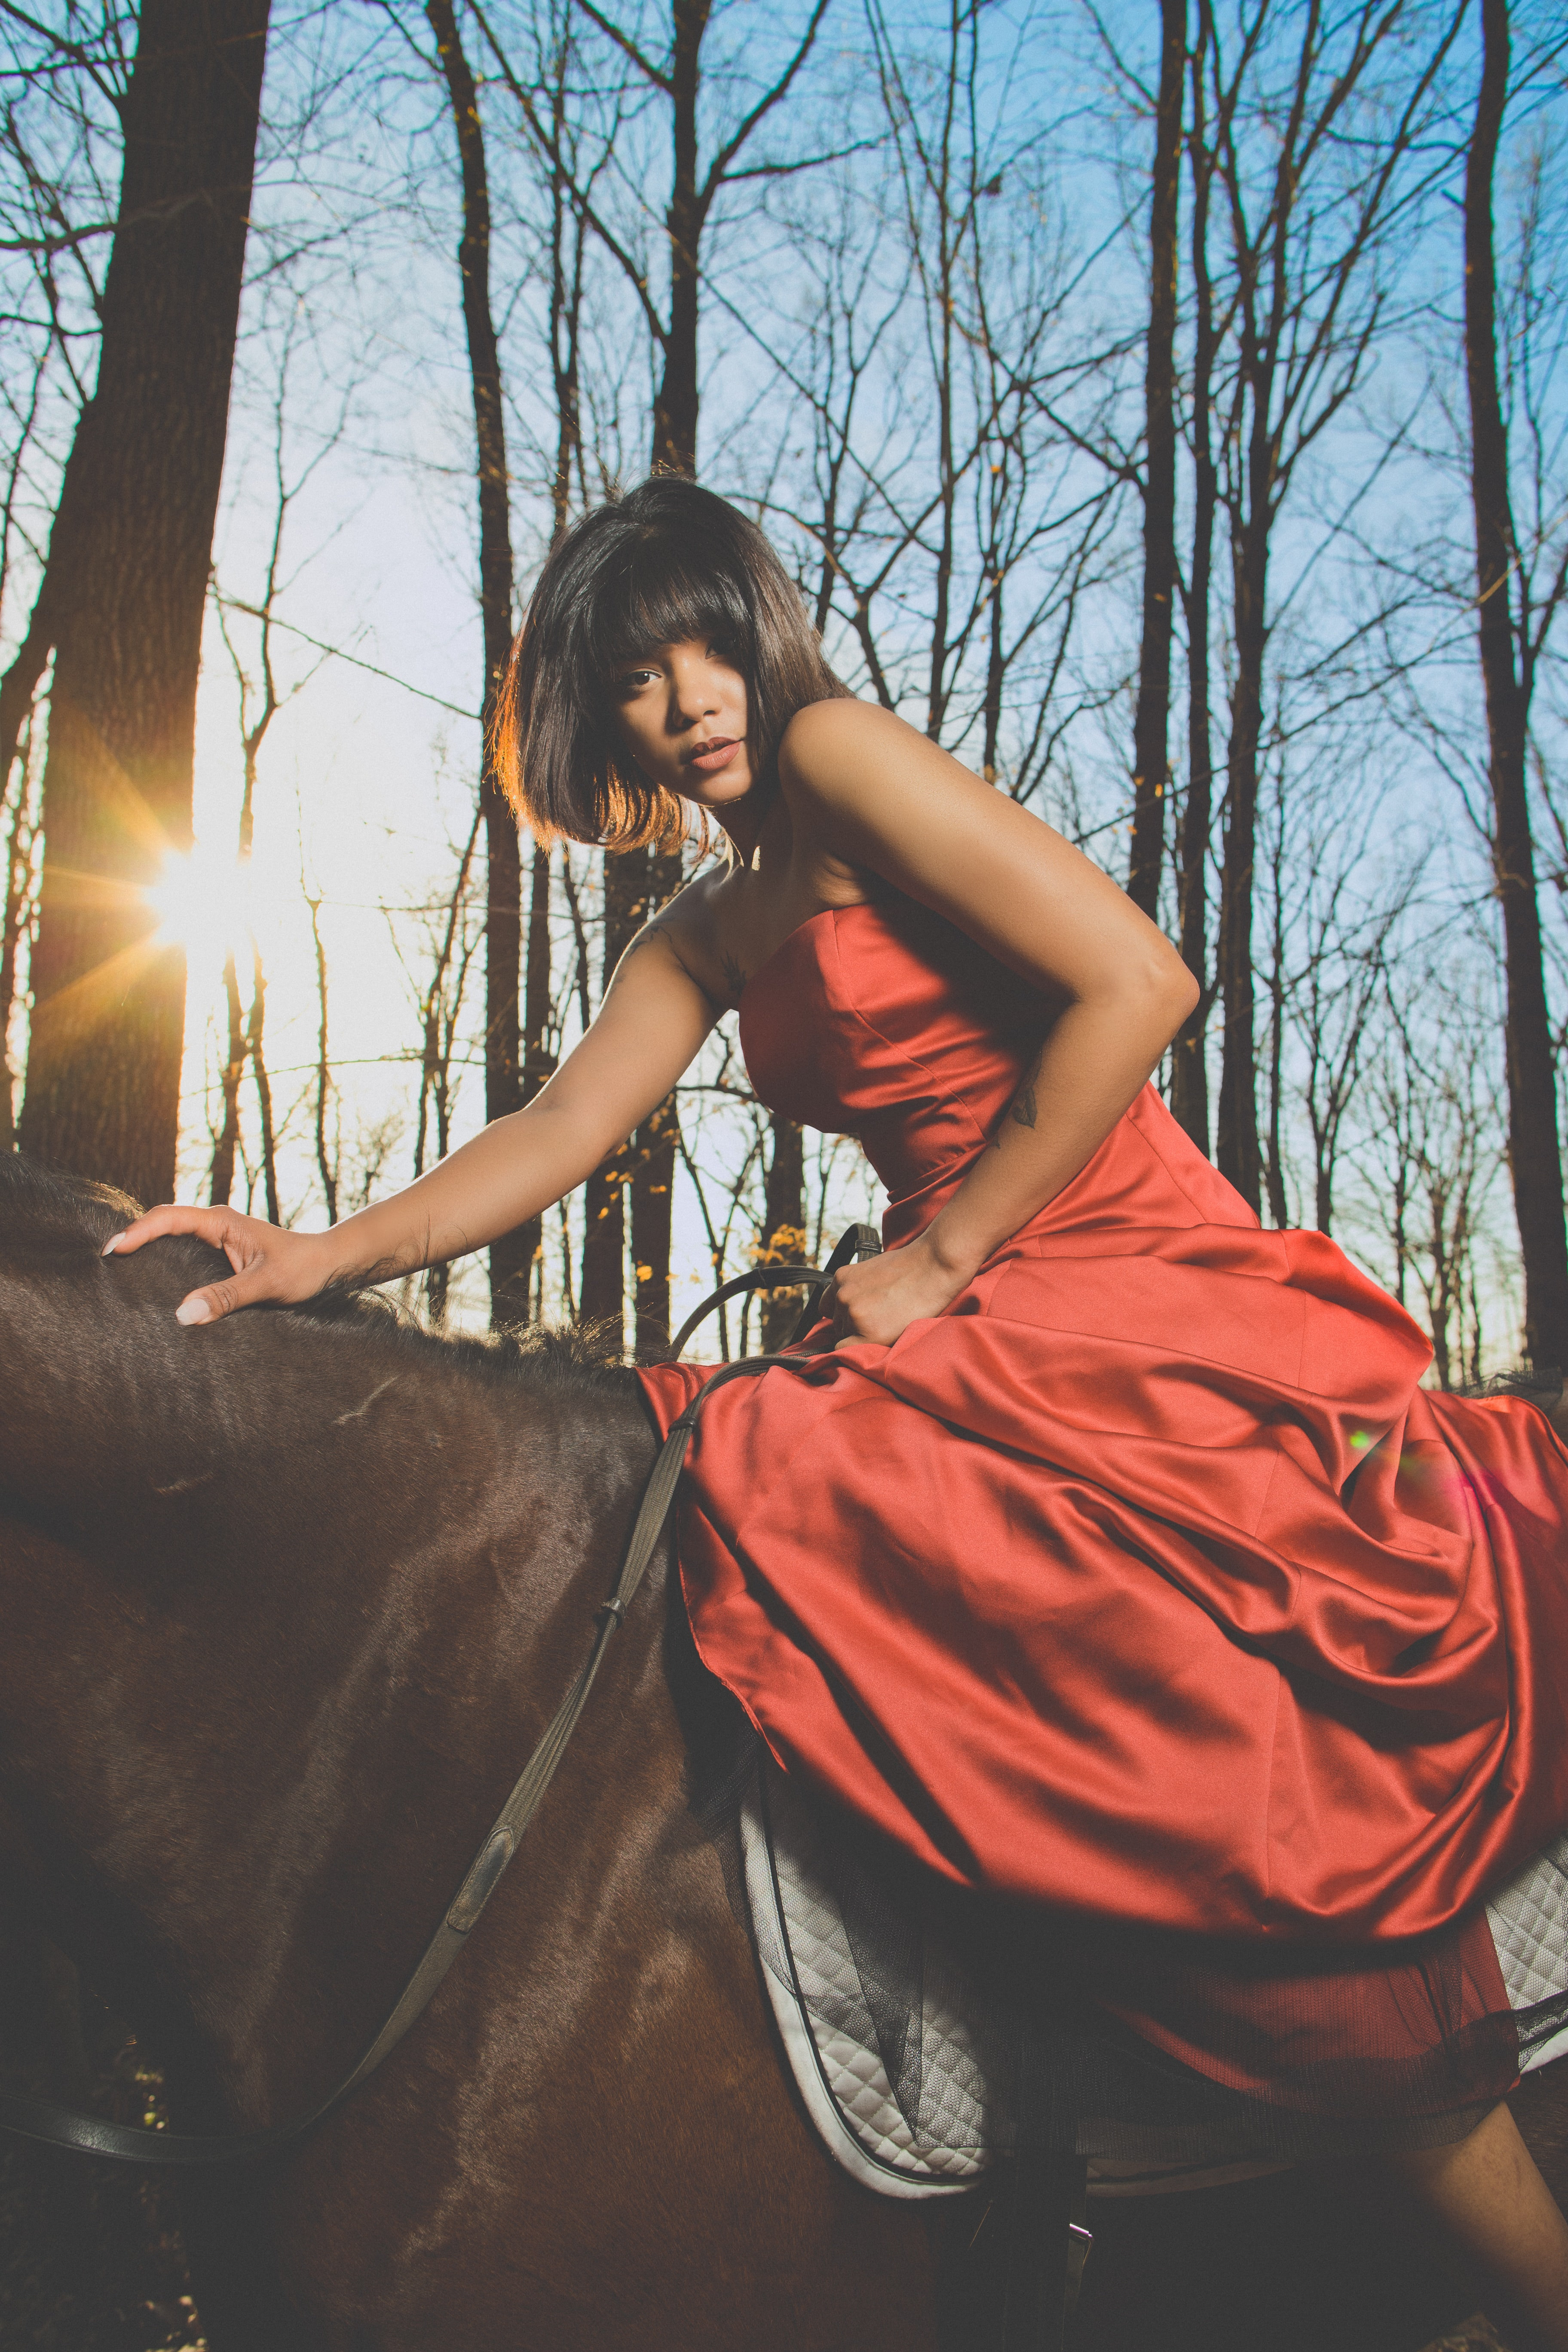 woman rides on horse